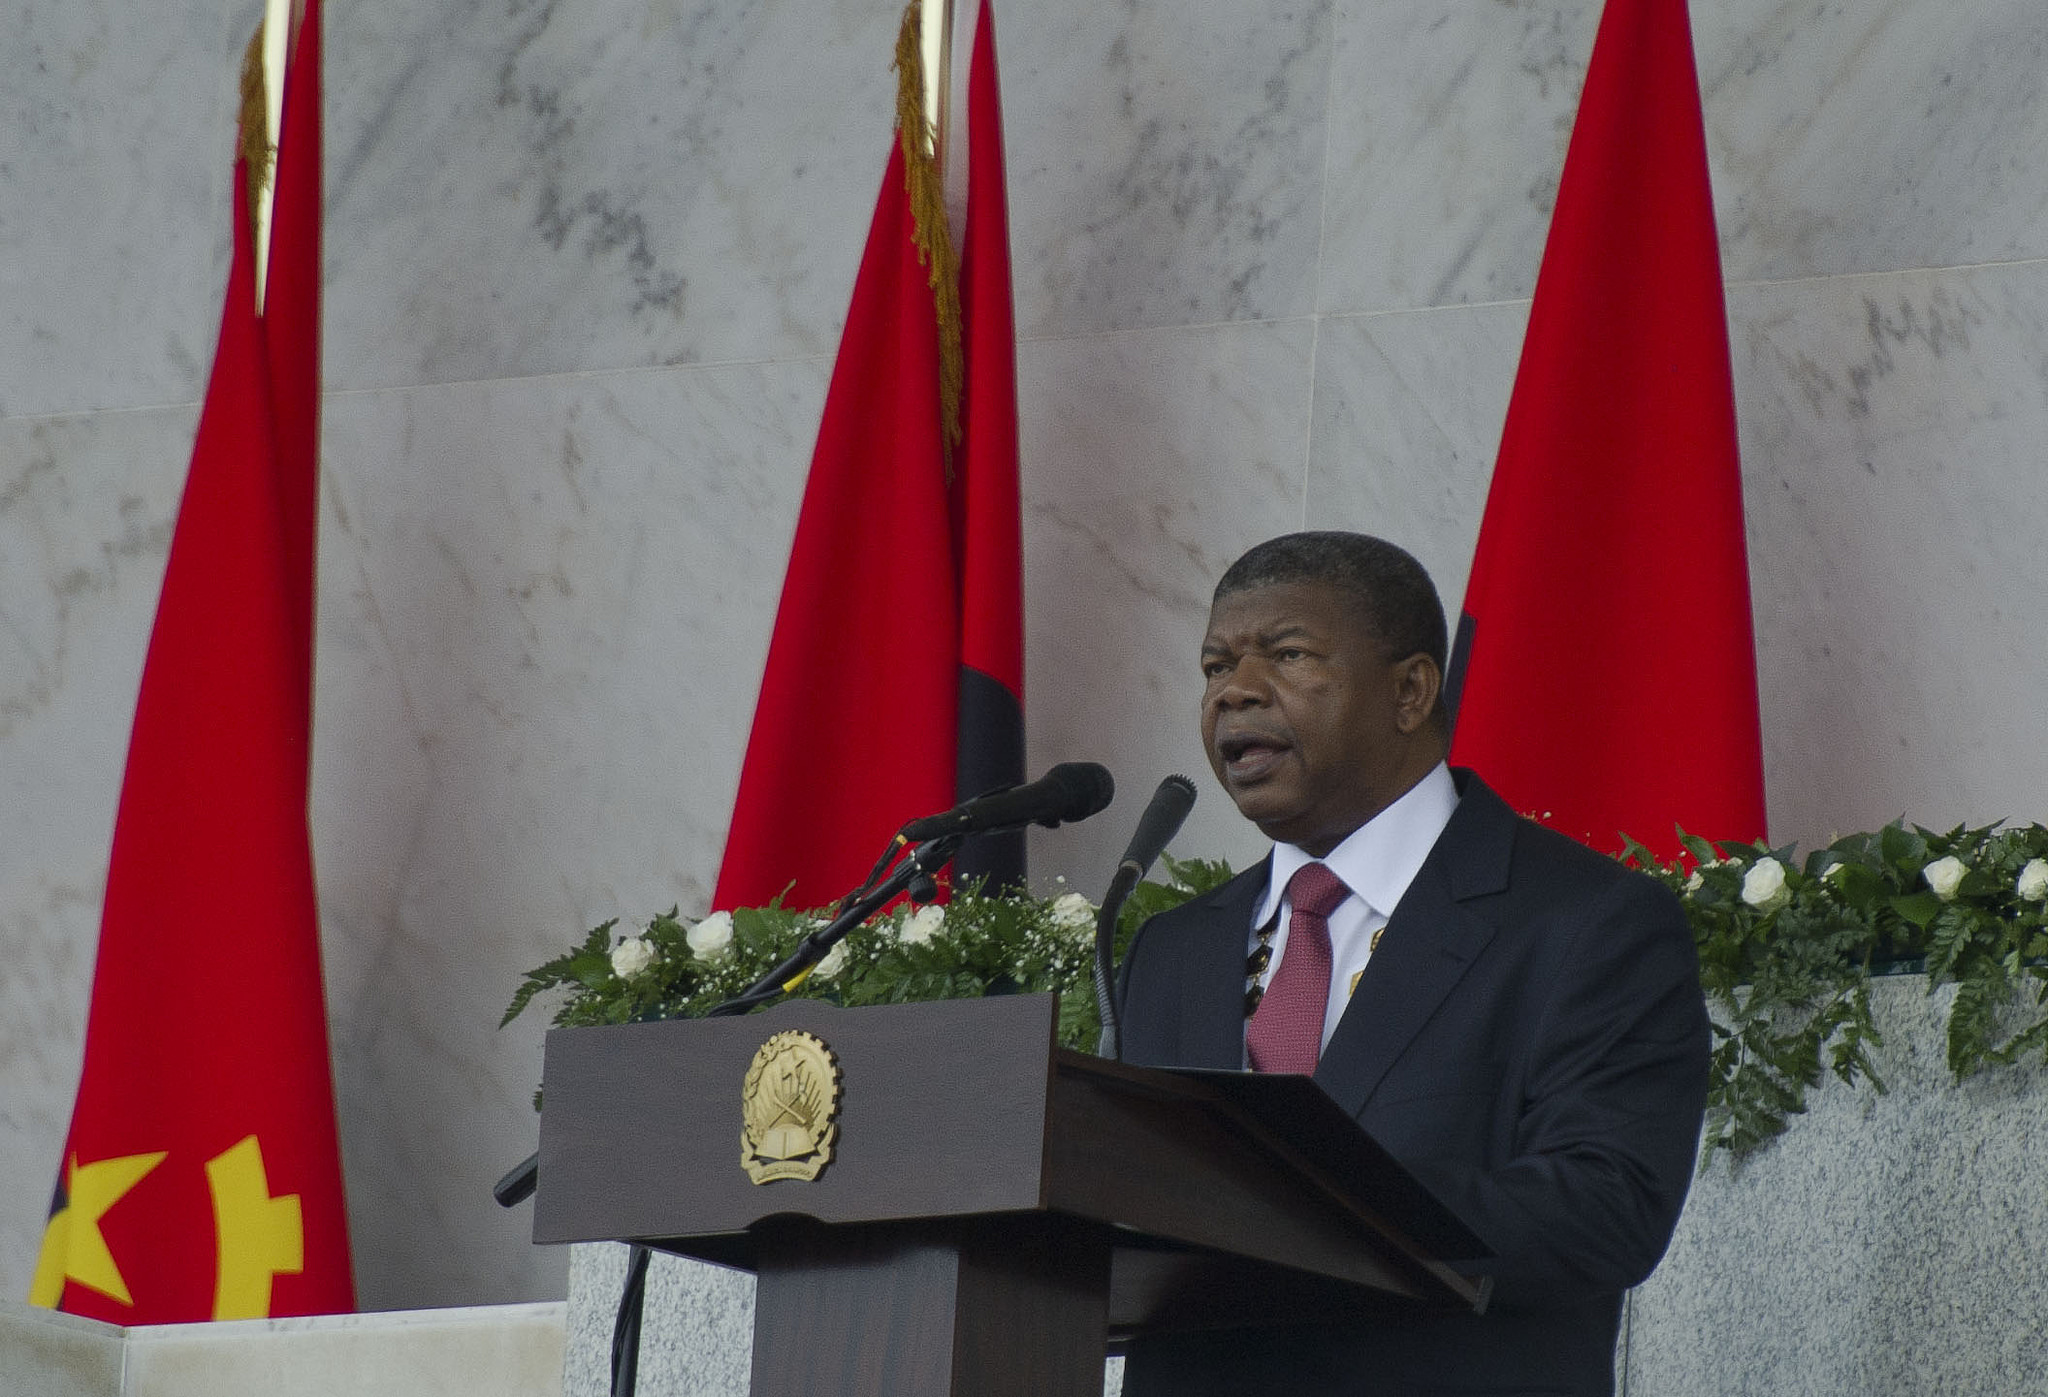 Joao Lourenco's visit to South Africa on Thursday and Friday is giving the world a closer look at the man who stepped in after Jose Eduardo dos Santos ruled the oil-rich but largely impoverished nation for nearly 38 years. (Photo: GCIS via GovernmentZA/Flickr)